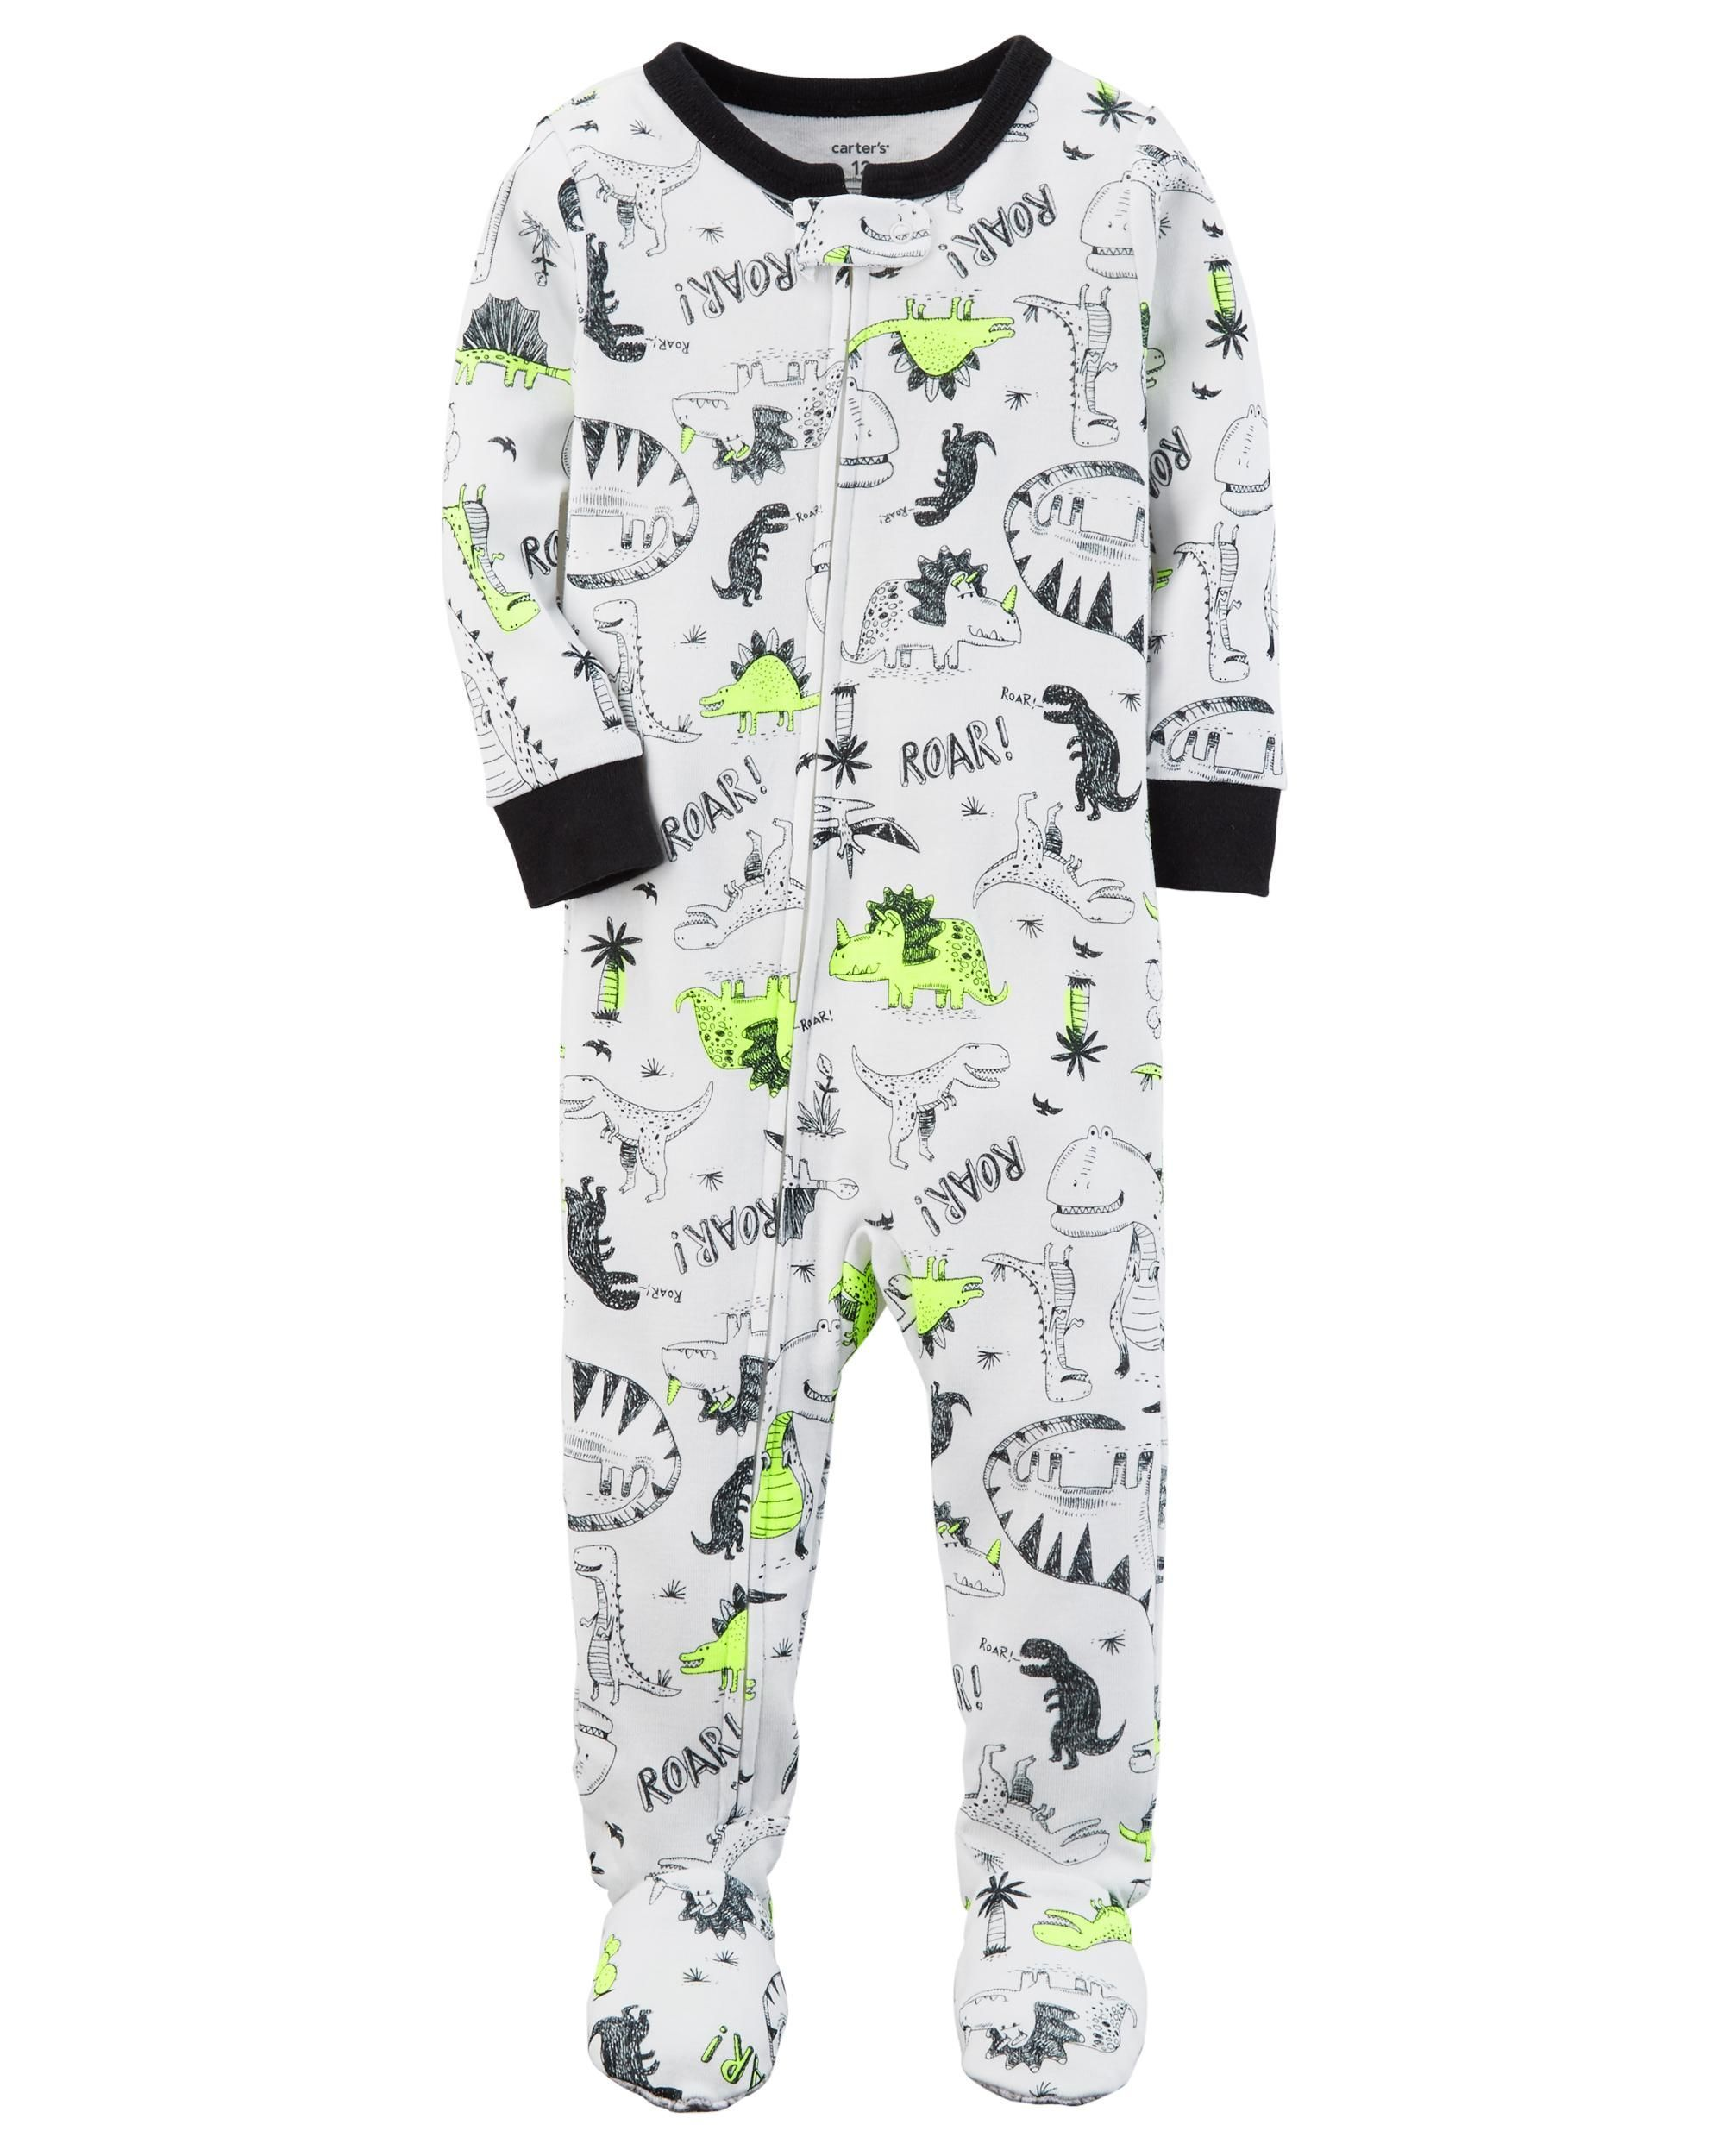 8e43d7146 Baby Boy 1-Piece Neon Dinosaur Snug Fit Cotton PJs